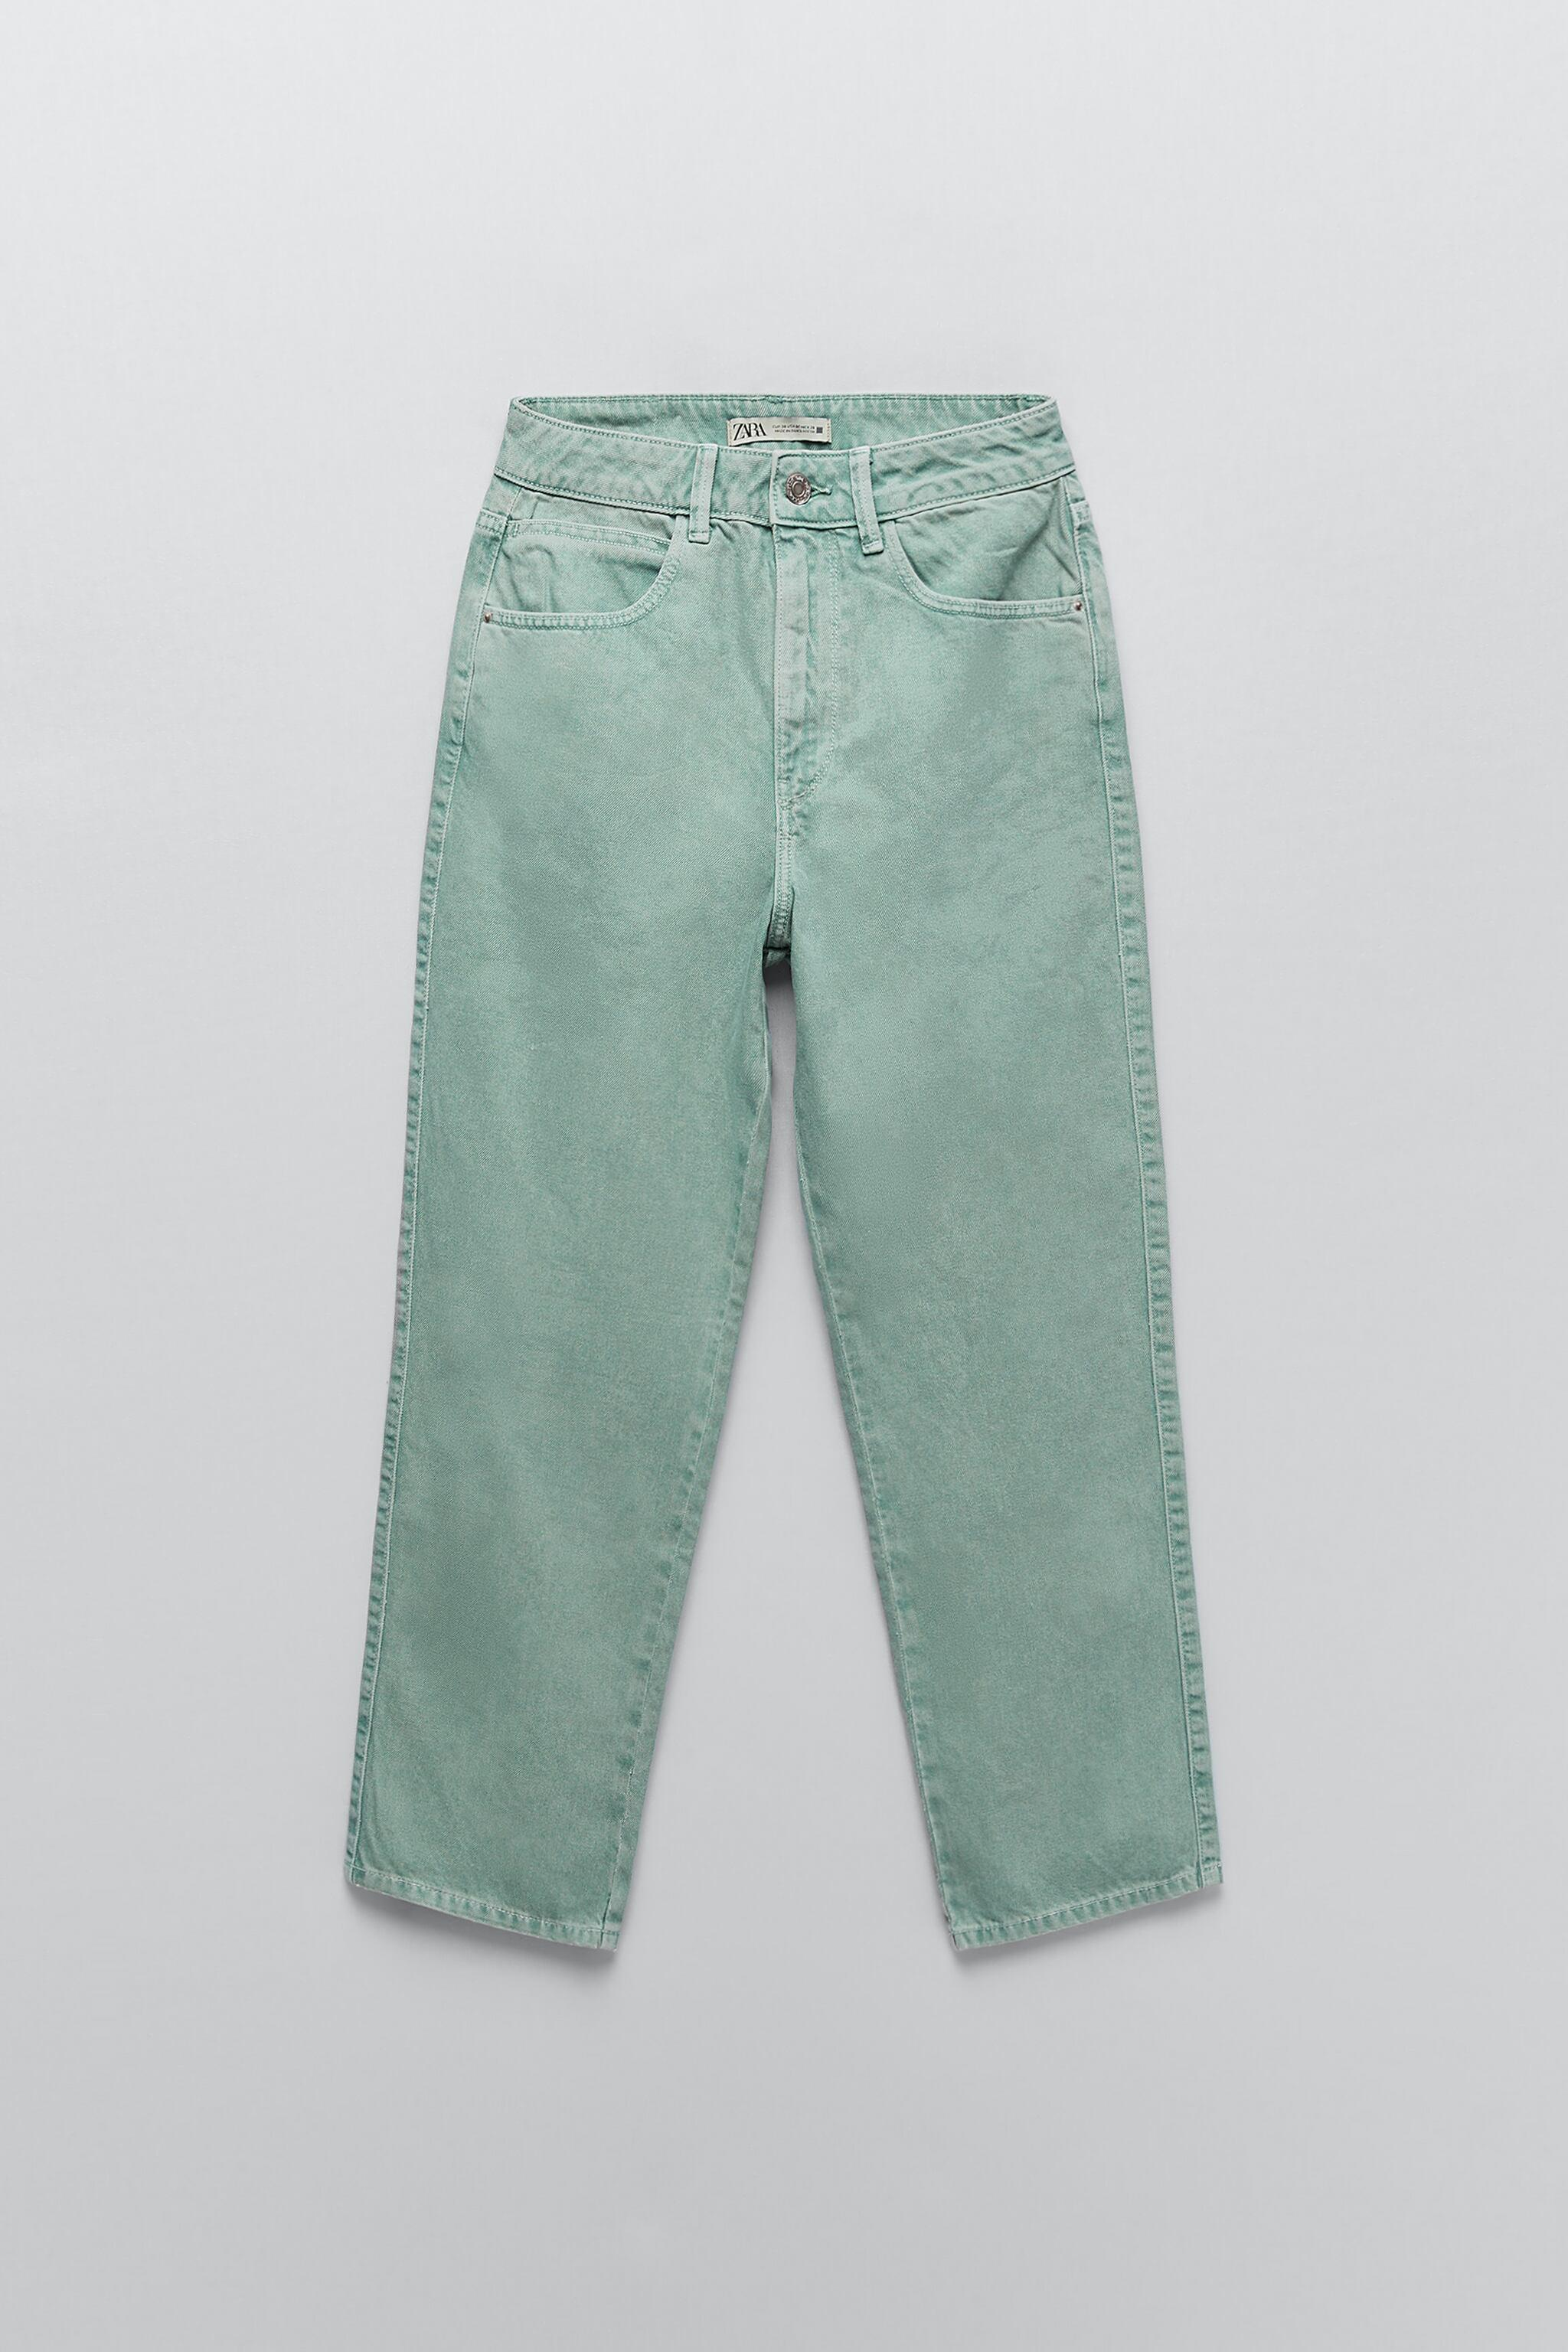 Z1975 HIGH RISE STRAIGHT JEANS 7